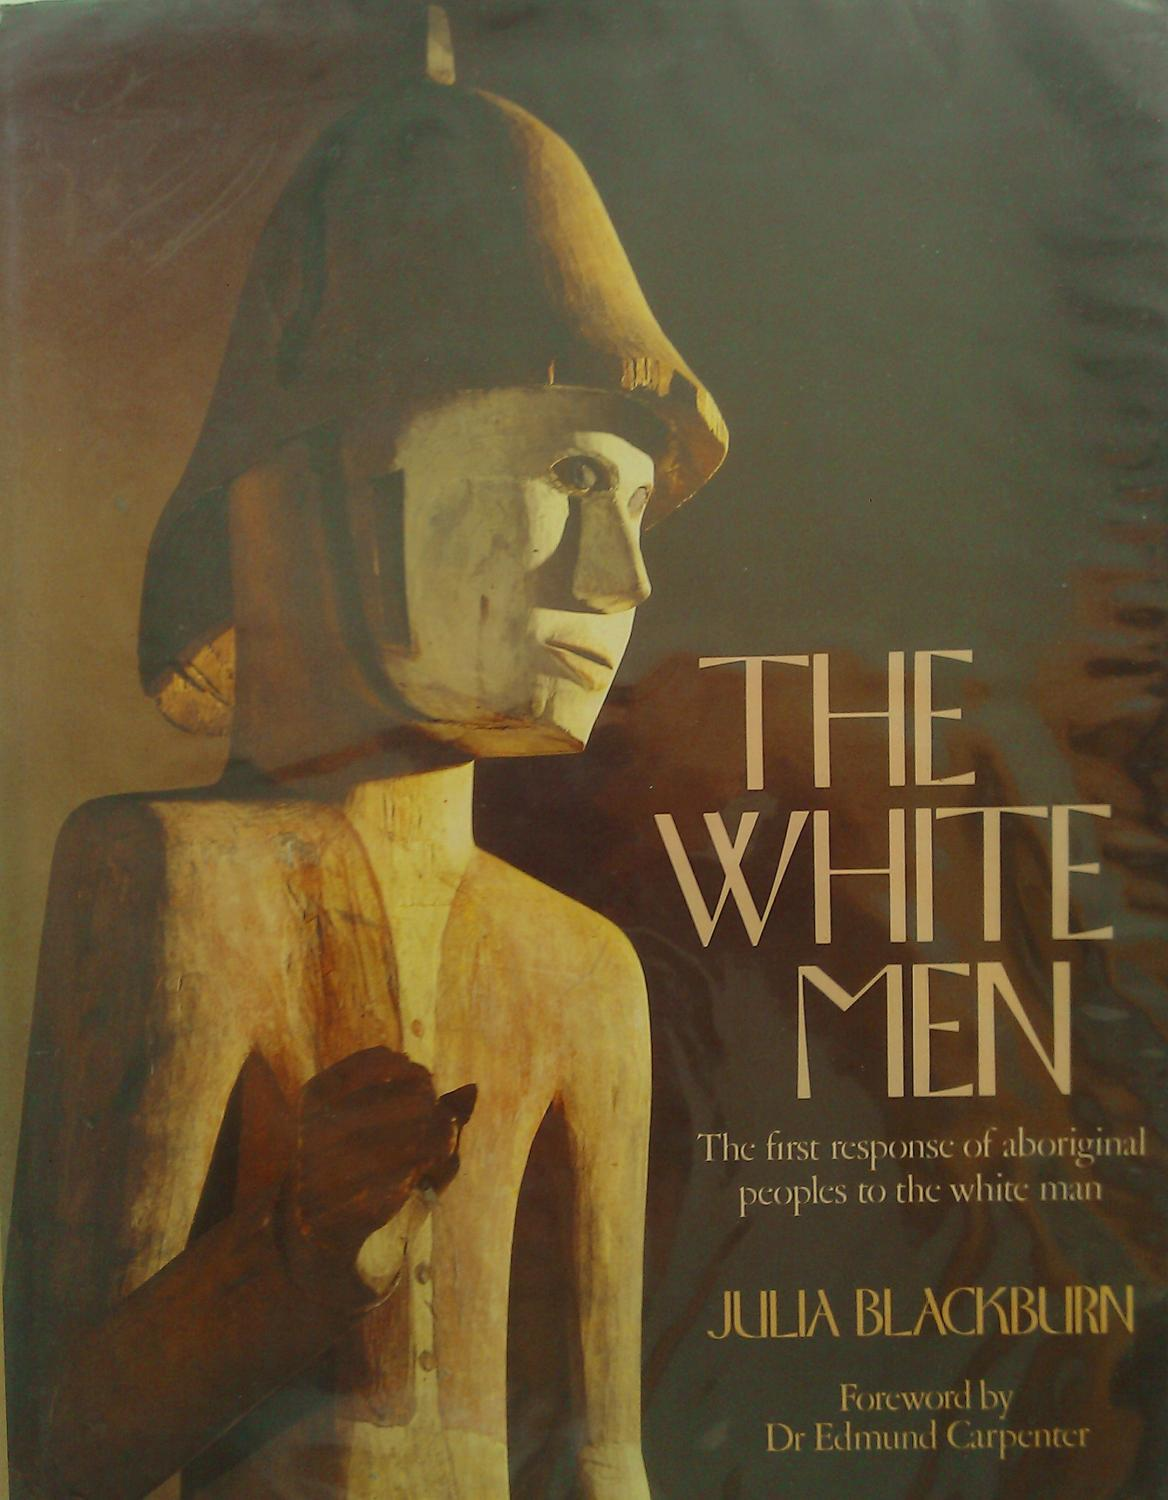 The White Man: The First Response of Aboriginal Peoples to the White Man